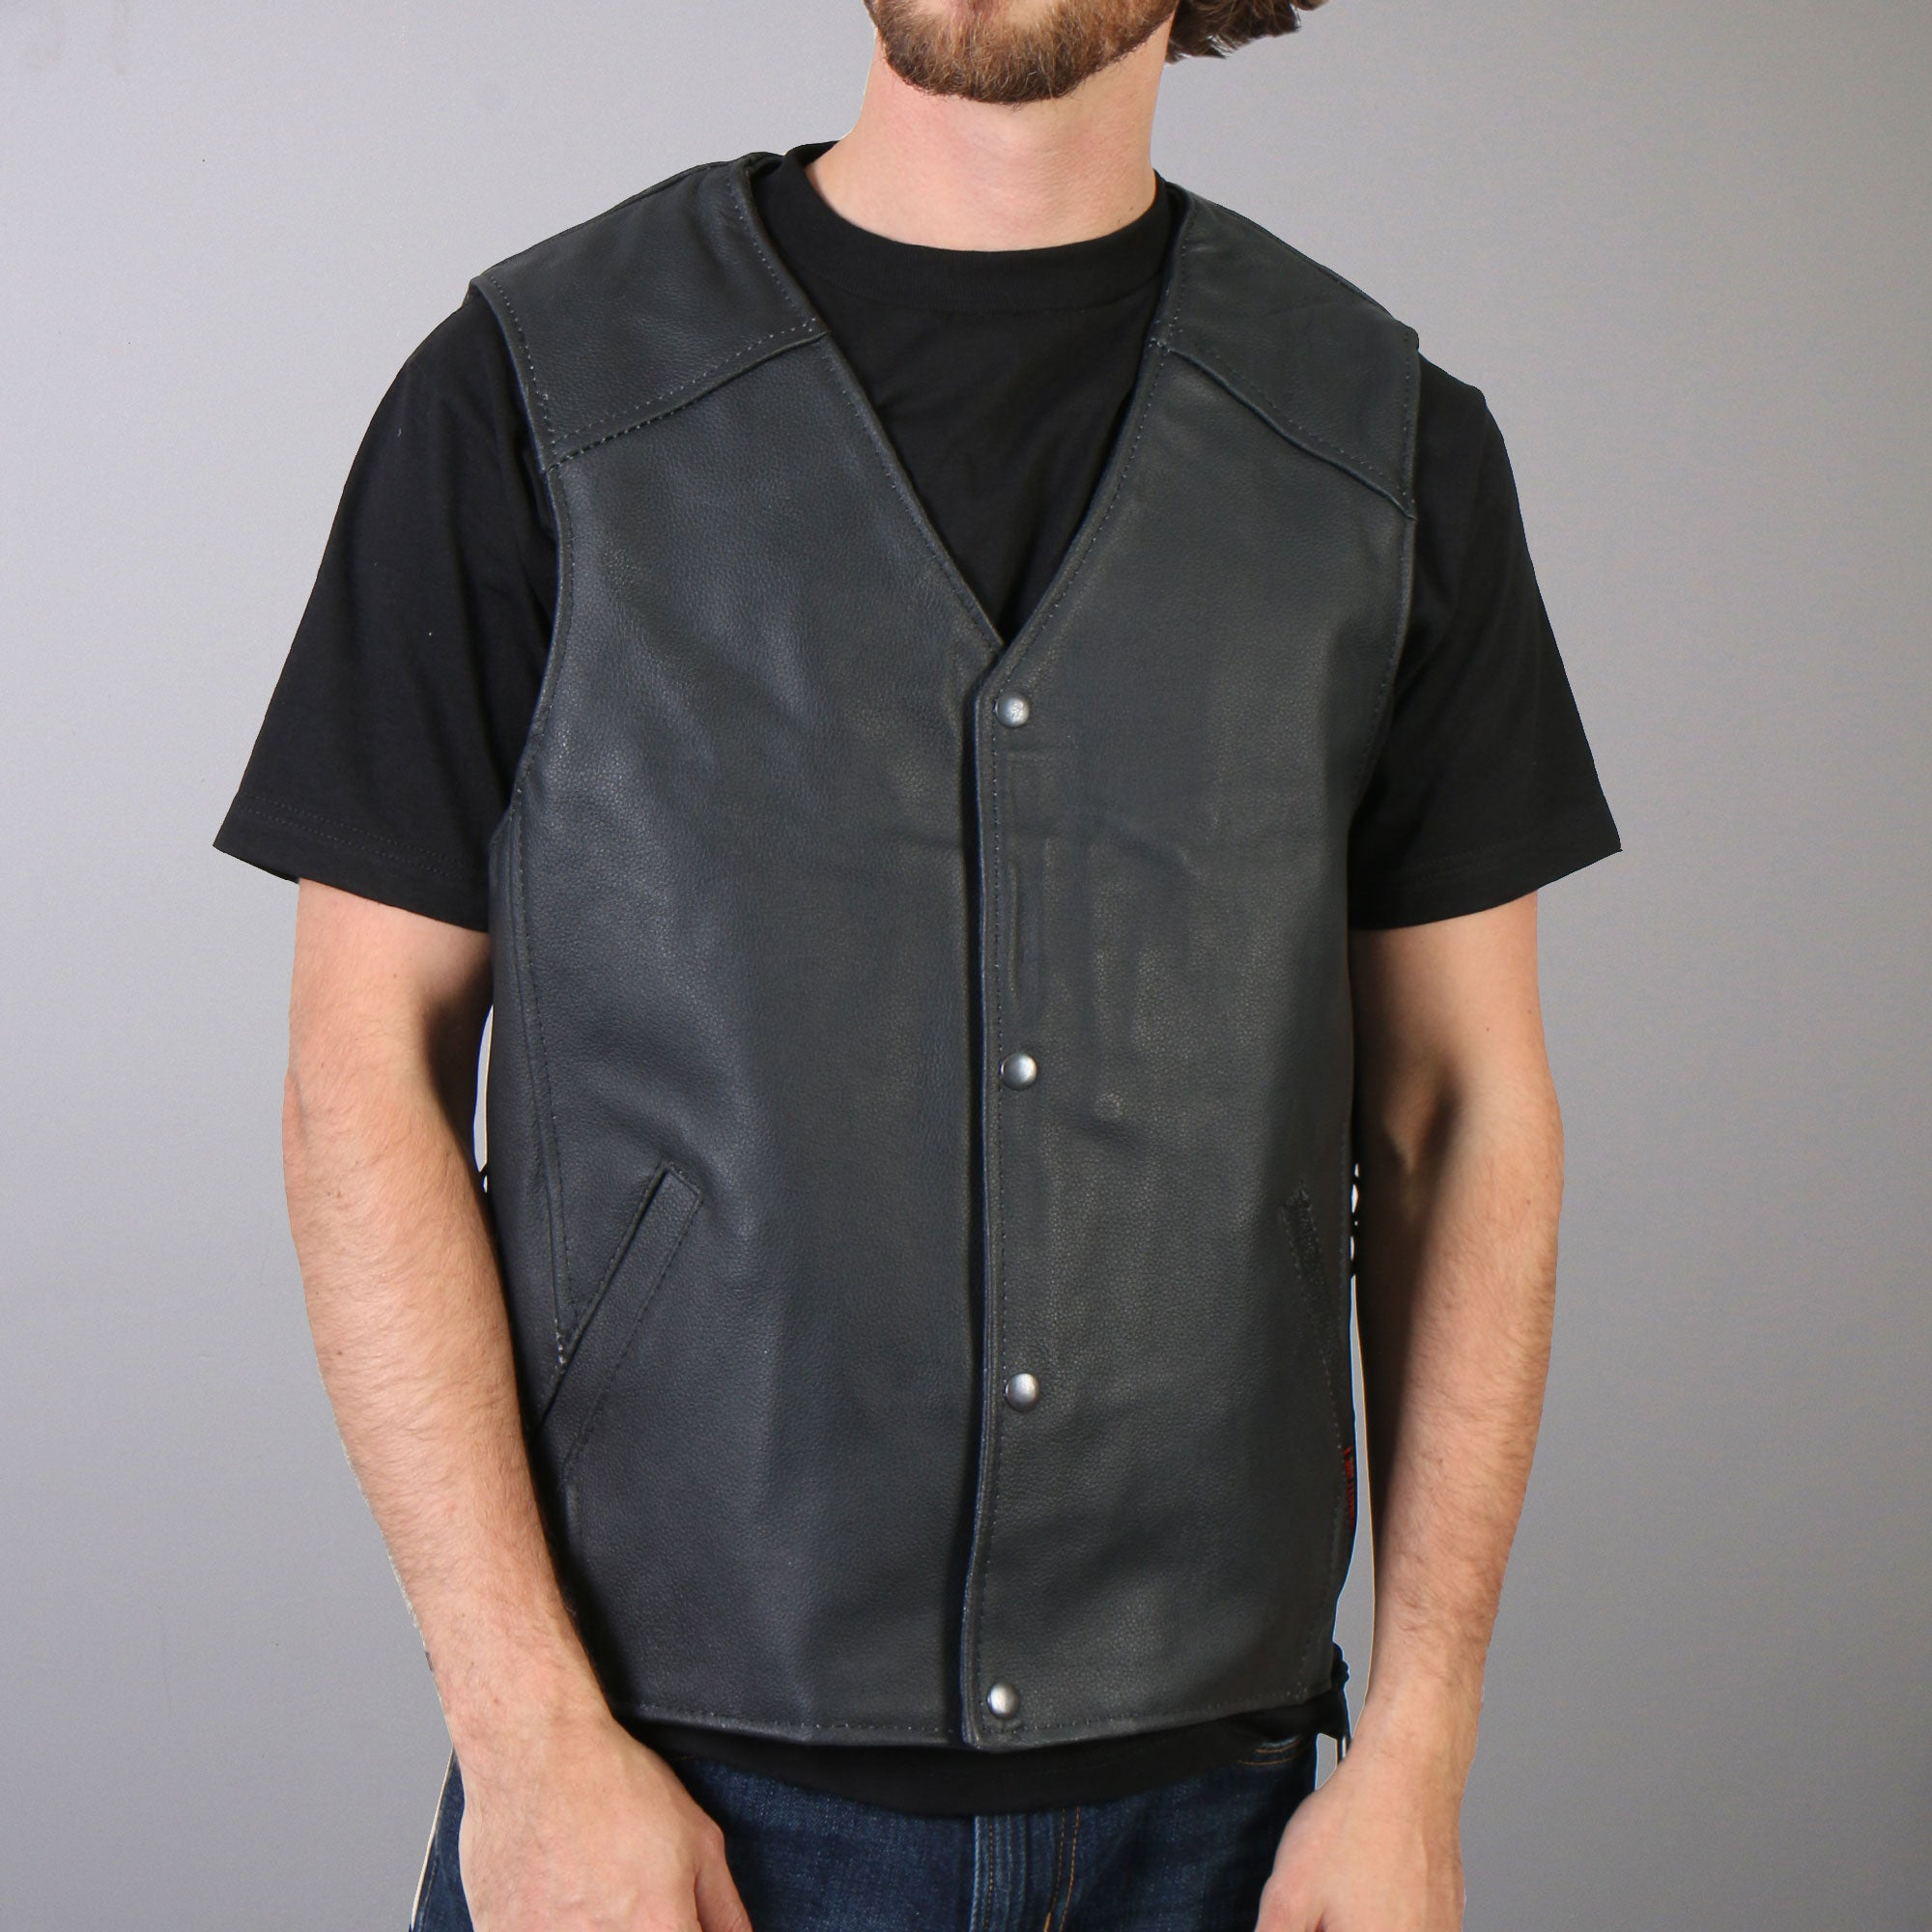 Hot Leathers Men's Concealed Carry Leather Vest w/ Side Lace